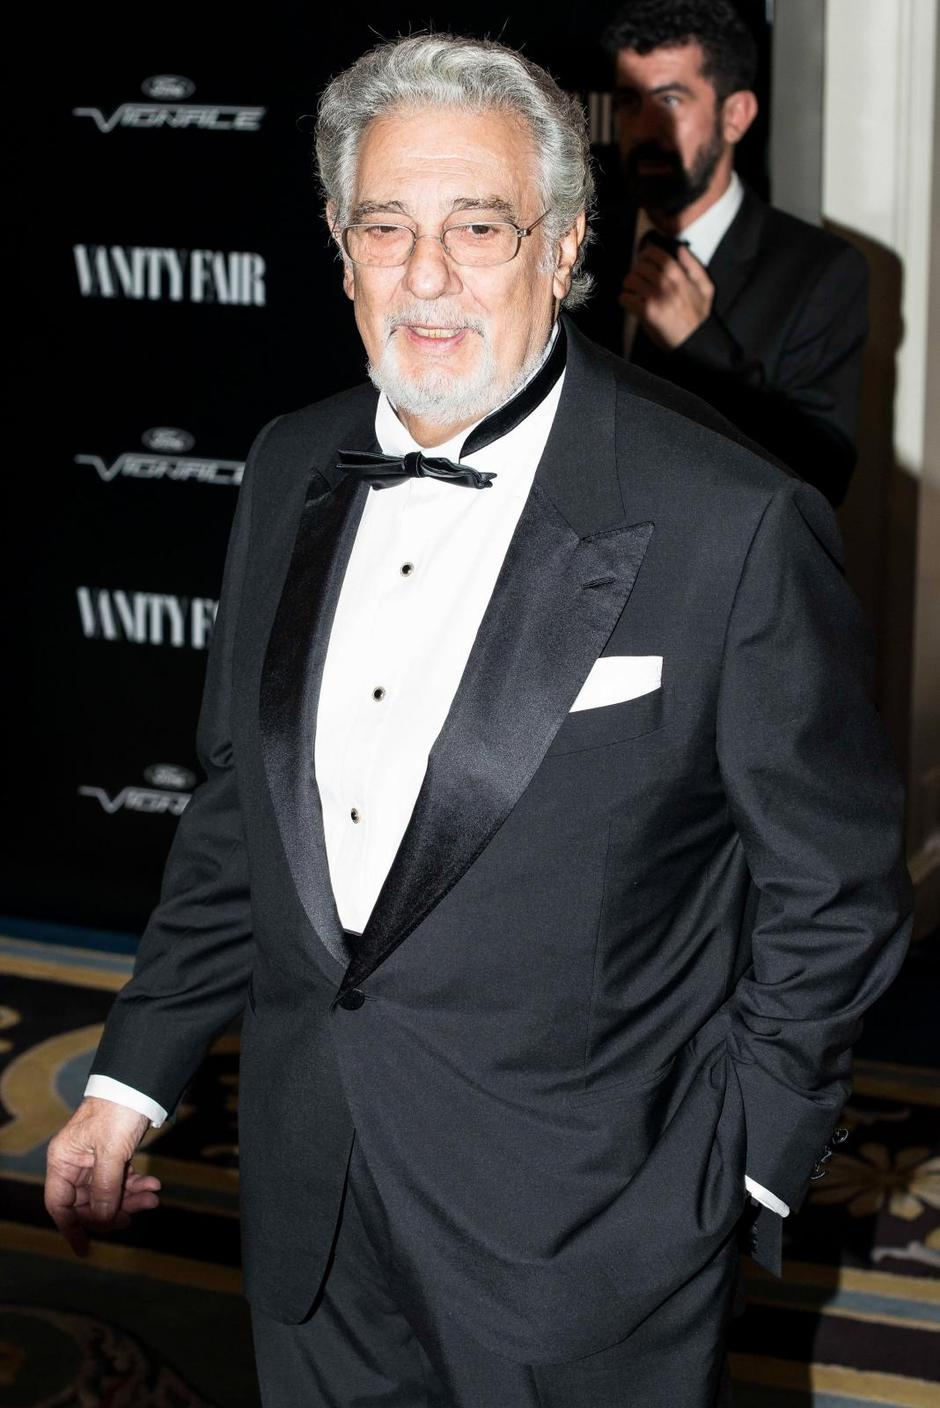 Vanity Fair reward Placido Domingo as Person of the Year 2015. | Autor: nph/NordPhoto/PIXSELLNordPhoto/PIXSELL